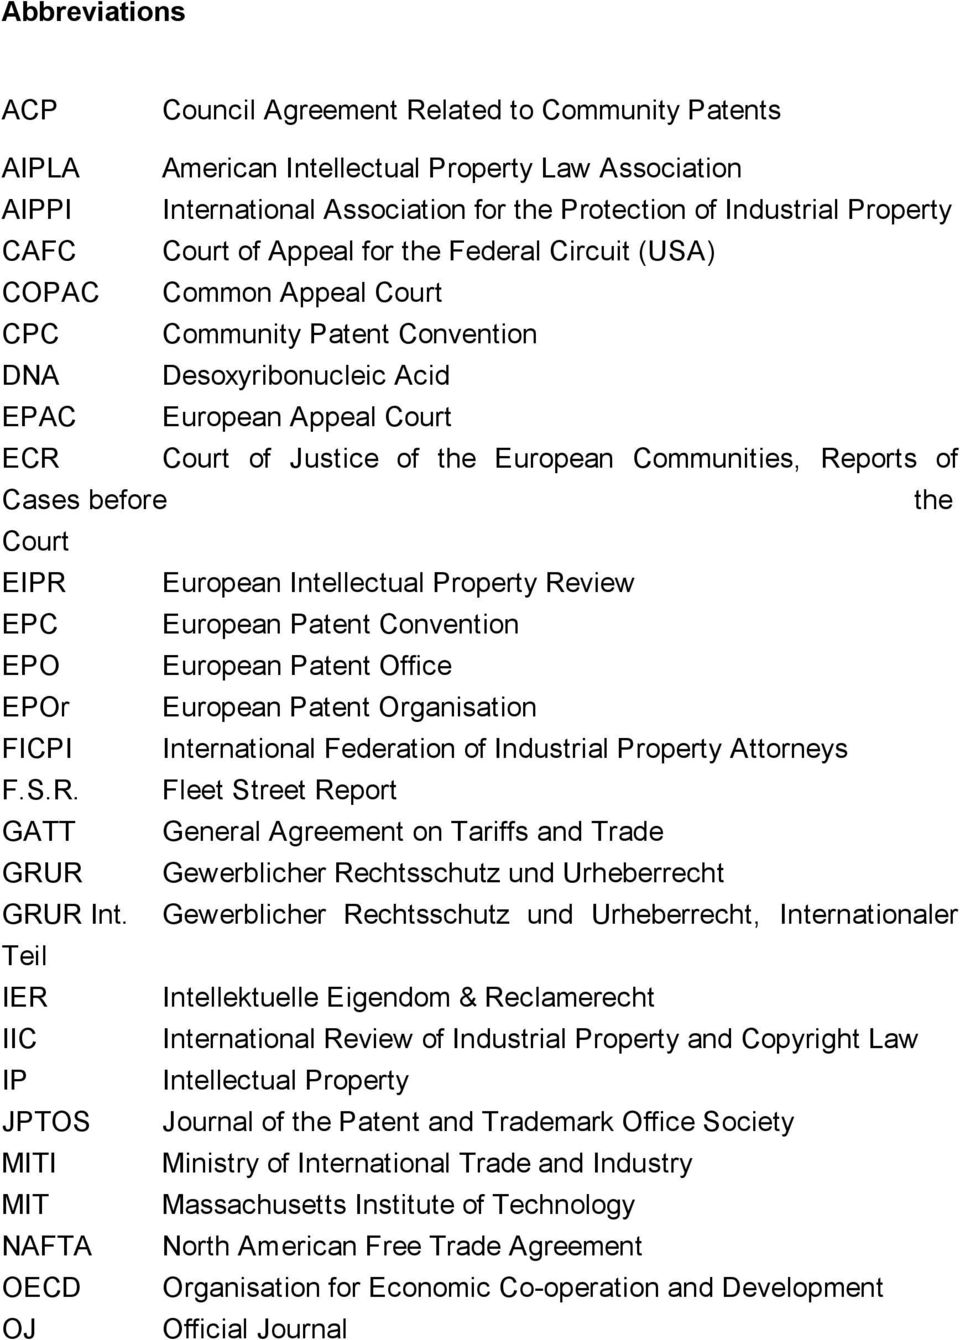 Communities, Reports of Cases before the Court EIPR European Intellectual Property Review EPC European Patent Convention EPO European Patent Office EPOr European Patent Organisation FICPI